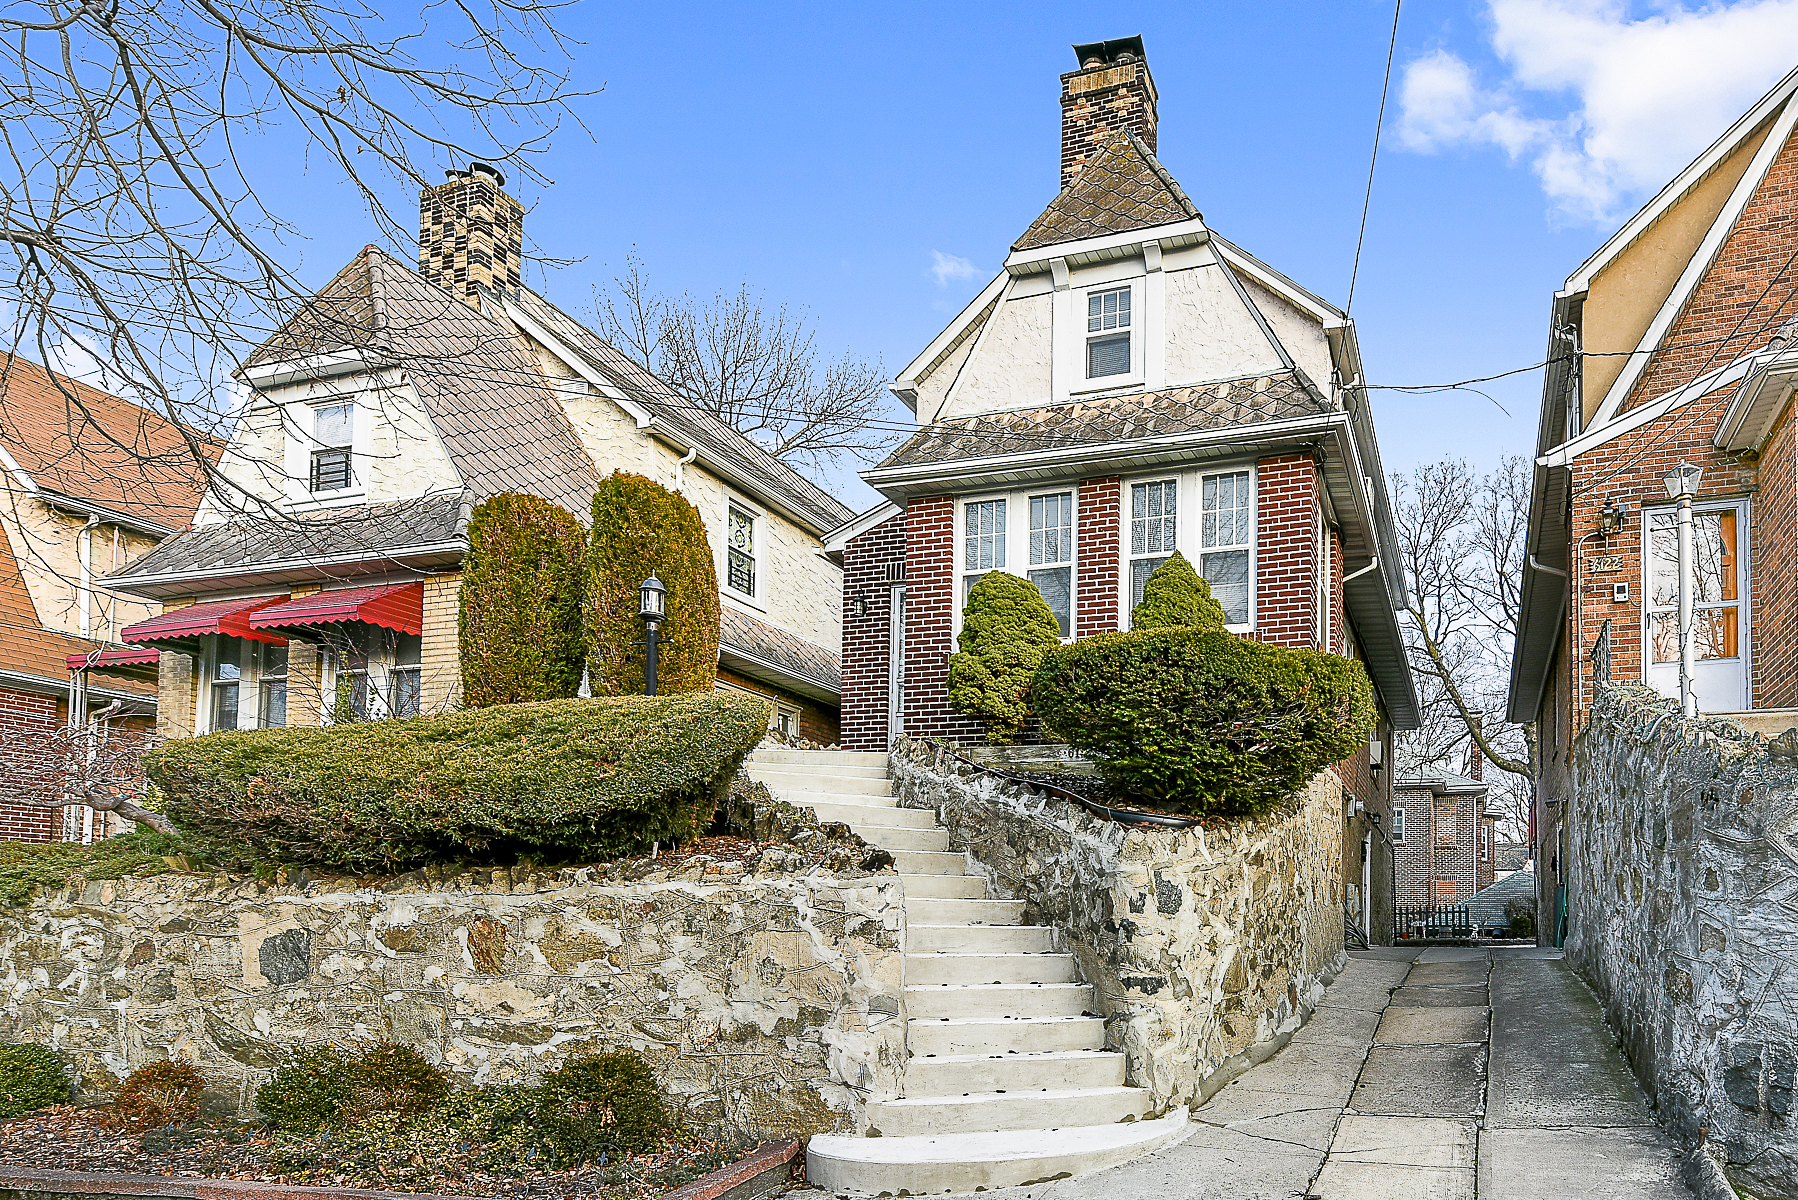 Maison unifamiliale pour l Vente à Detached Single Family Brick Home 6126 Tyndall Avenue Riverdale, New York, 10471 États-Unis